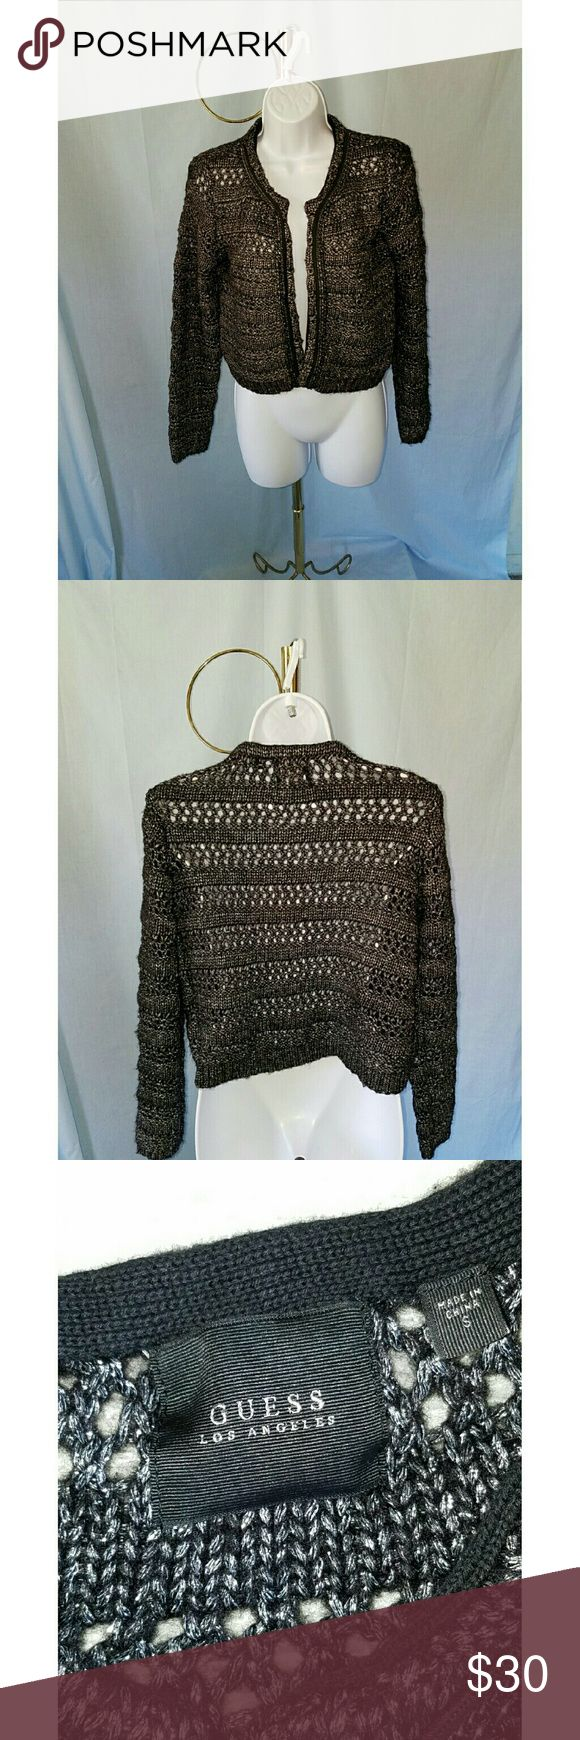 """GUESS BLACK AND METALLIC SILVER CARDIGAN GUESS BLACK AND METALLIC SILVER CROP CARDIGAN  has an open front with chain trim around the neckline and sweater opening. It has an open front. Size S  29%polyester 26% acrylic 26% wool and 19% metallic.  Armpit to armpit is 18.75"""" and shoulder to hem is 18.5"""". All measurements are approximate and taken flat. Guess Jackets & Coats"""